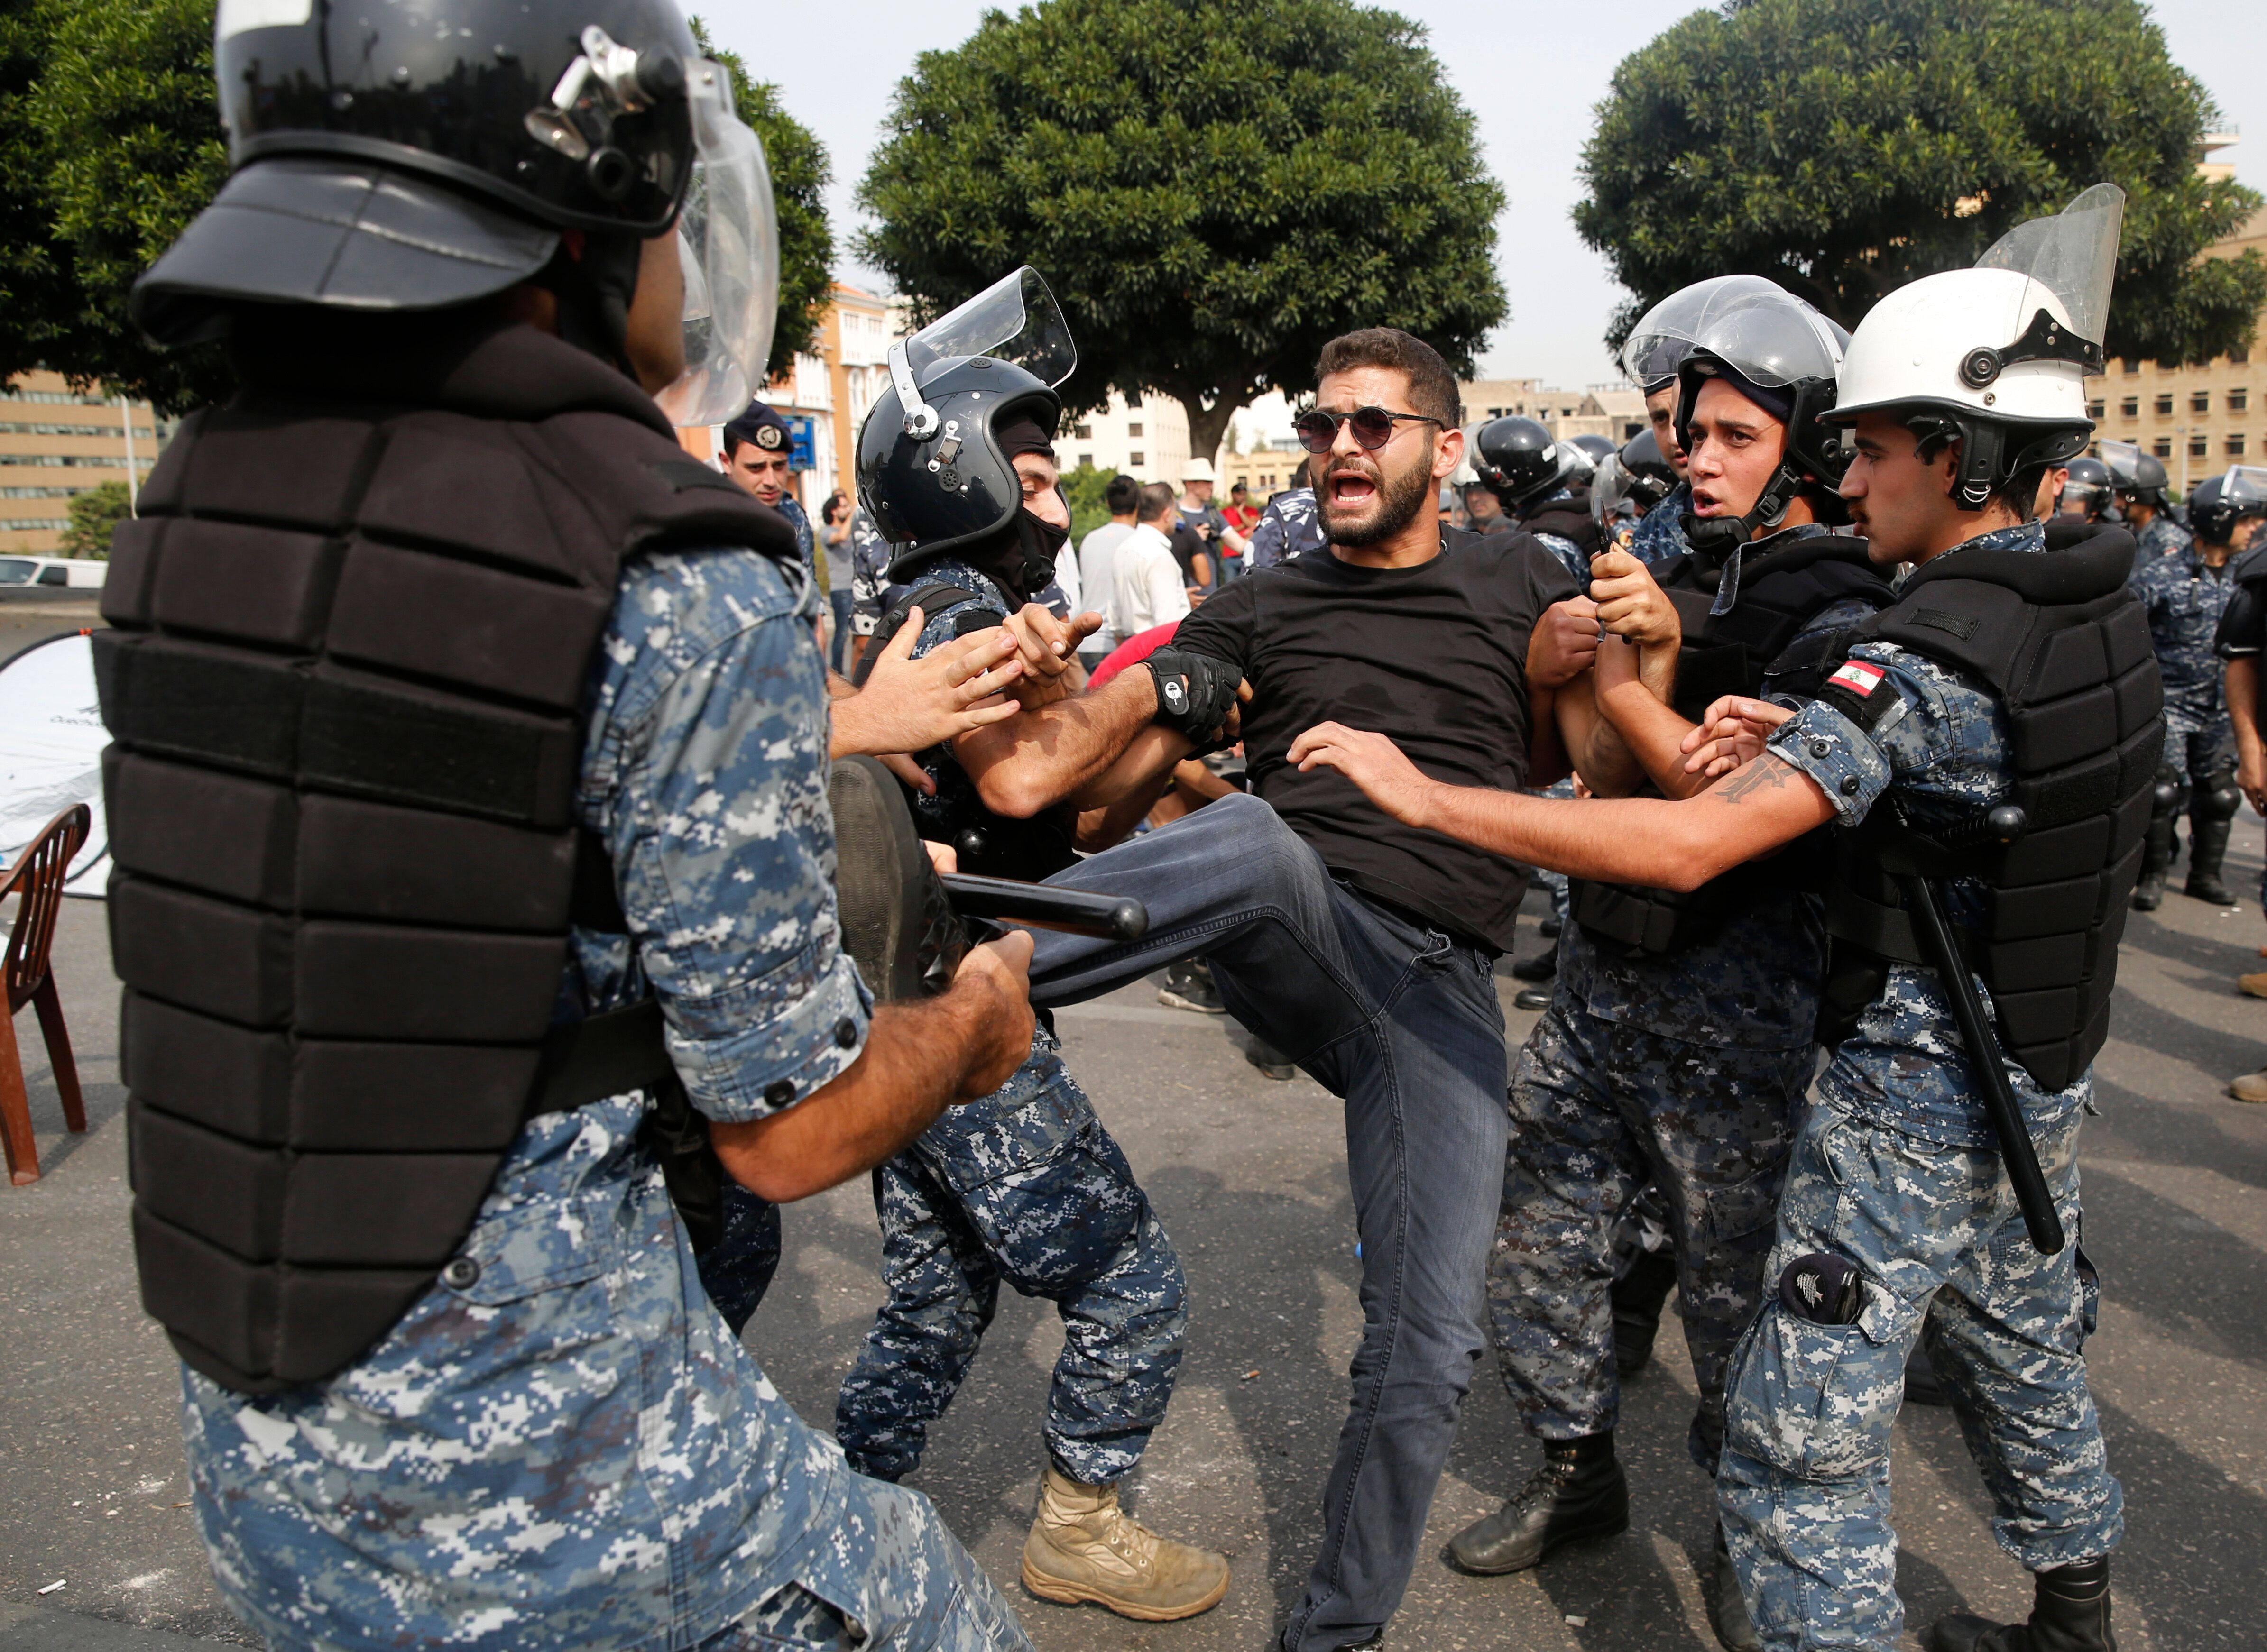 Police remove an anti-government protester blocking a main highway with his body in Beirut, Lebanon, Saturday, Oct. 26, 2019.